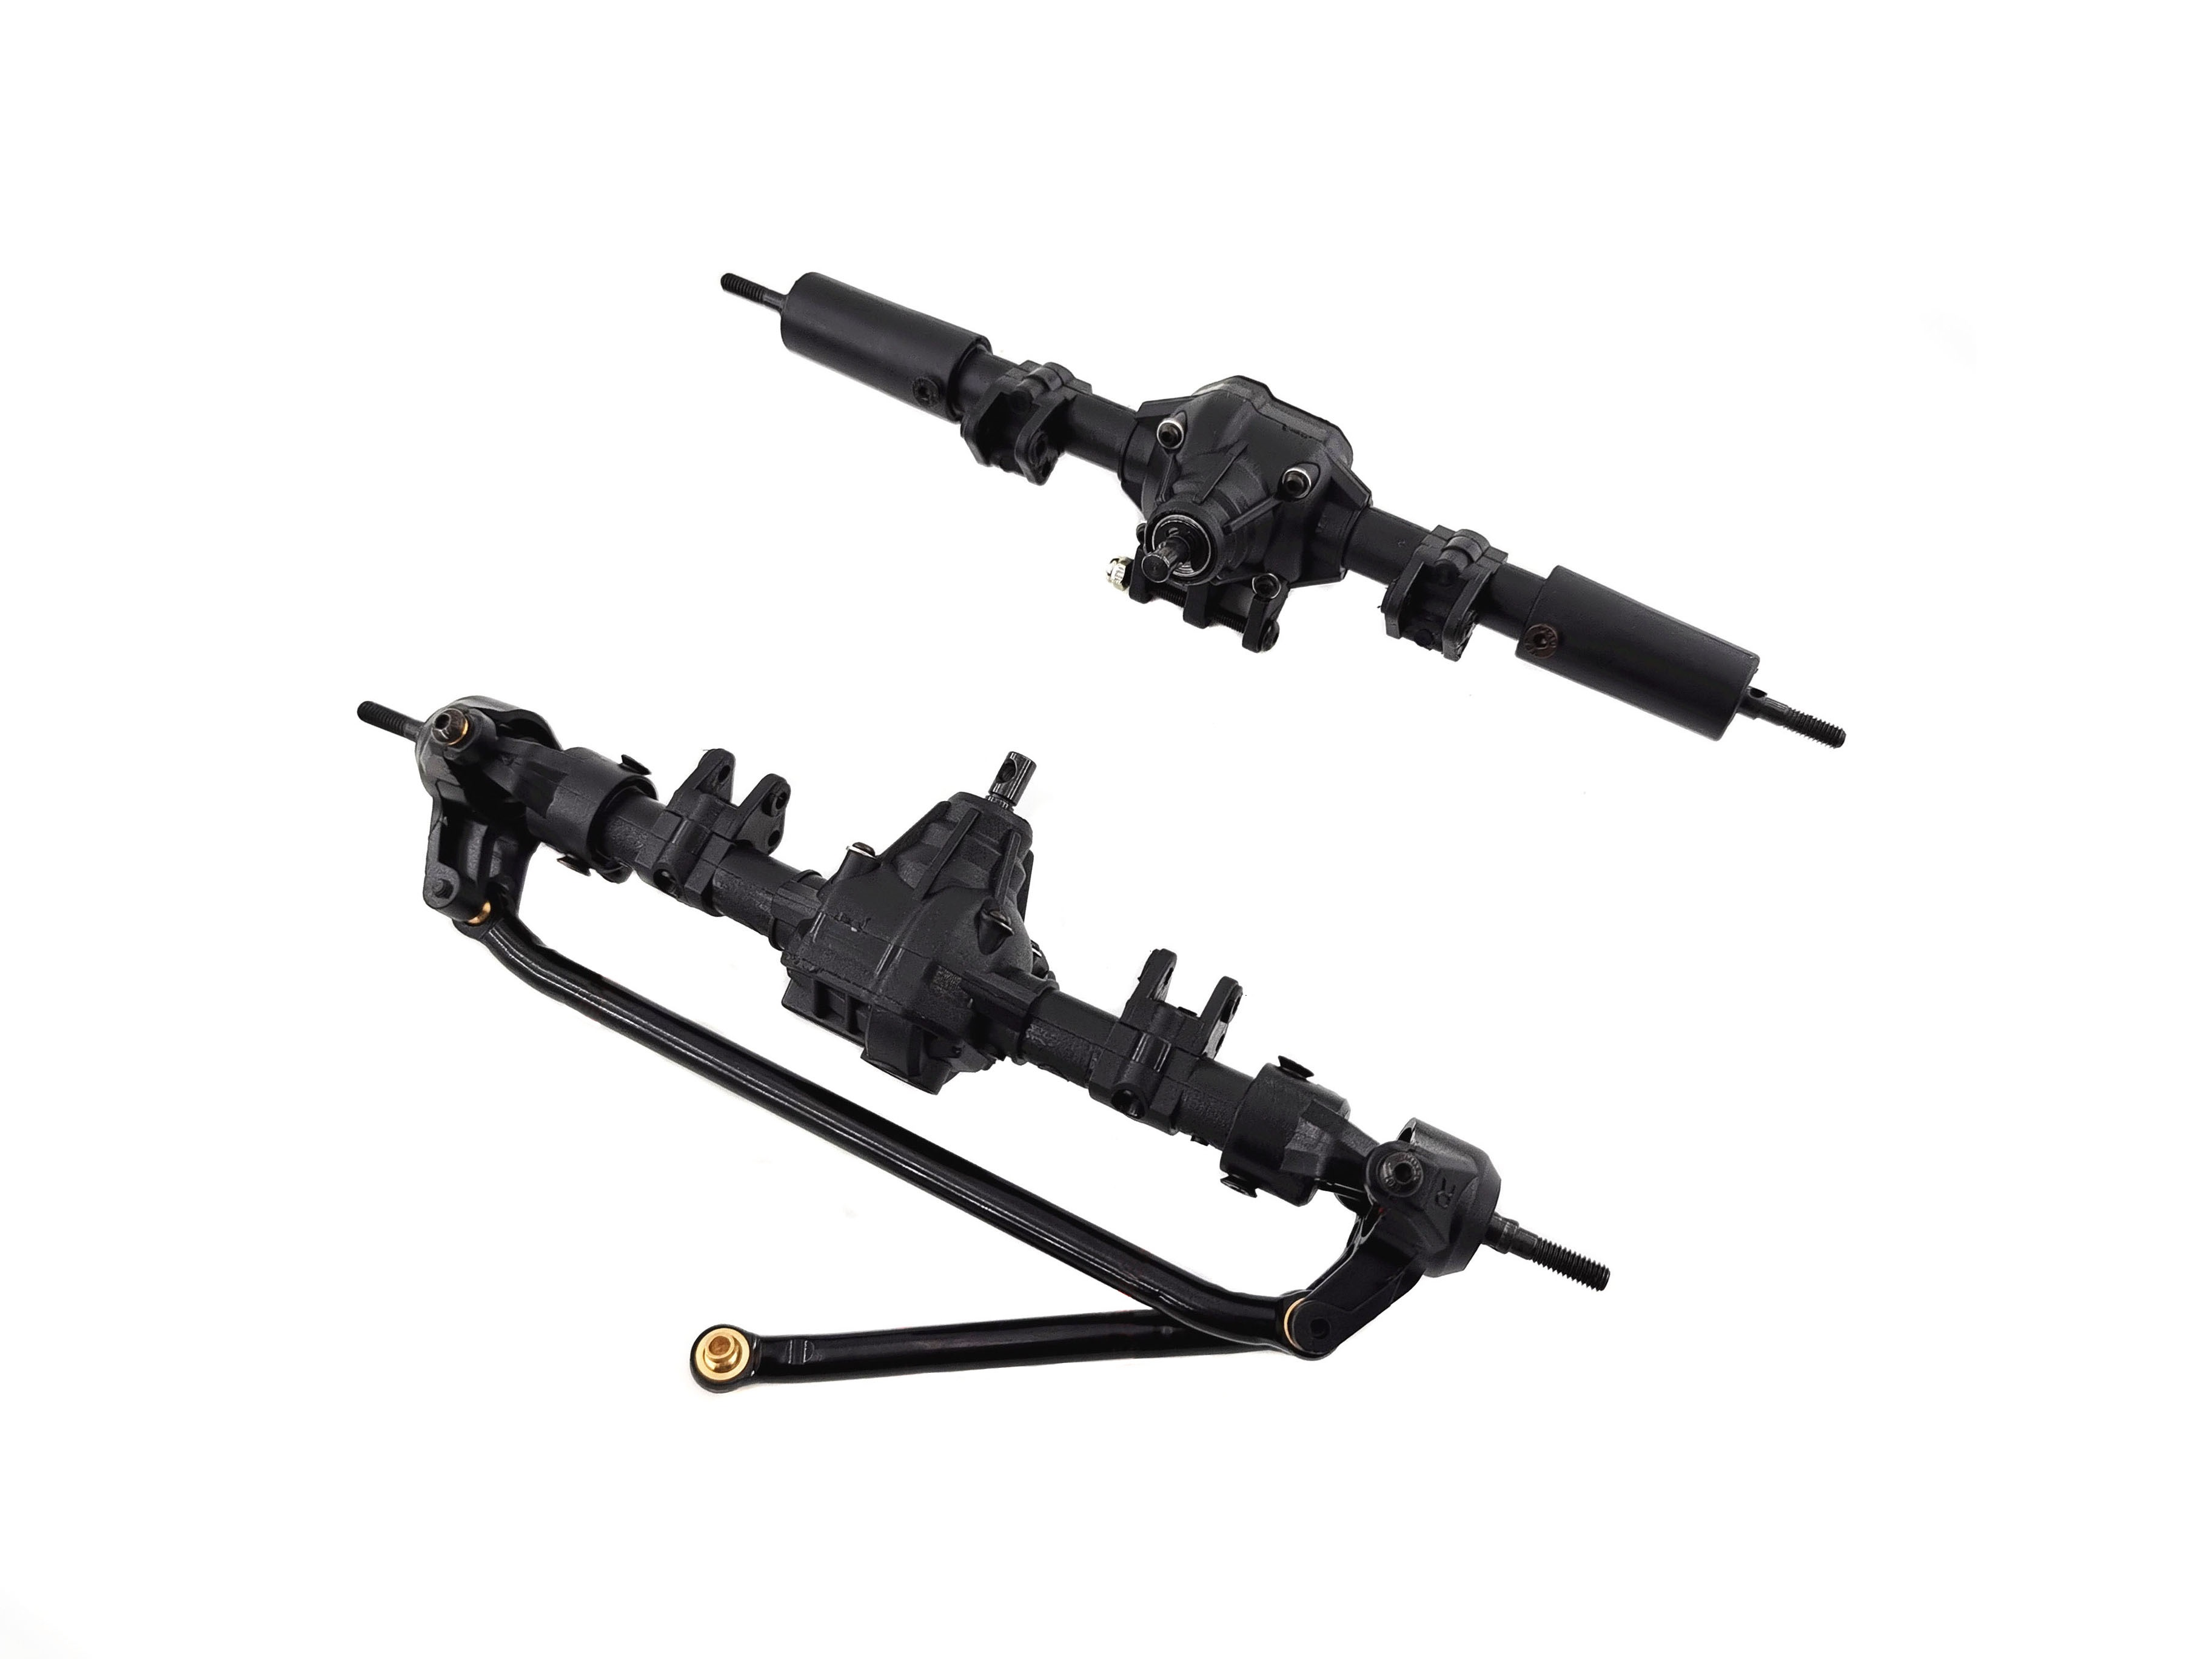 1/10 RC Car Front & Rear Bridge Axle Shaft Transmission Bridge with Differential for SCX10 SCX10 II 90046 90047 313mm 12.3in Wheelbase Assembled Frame Chassis With differential_Front and rear axles